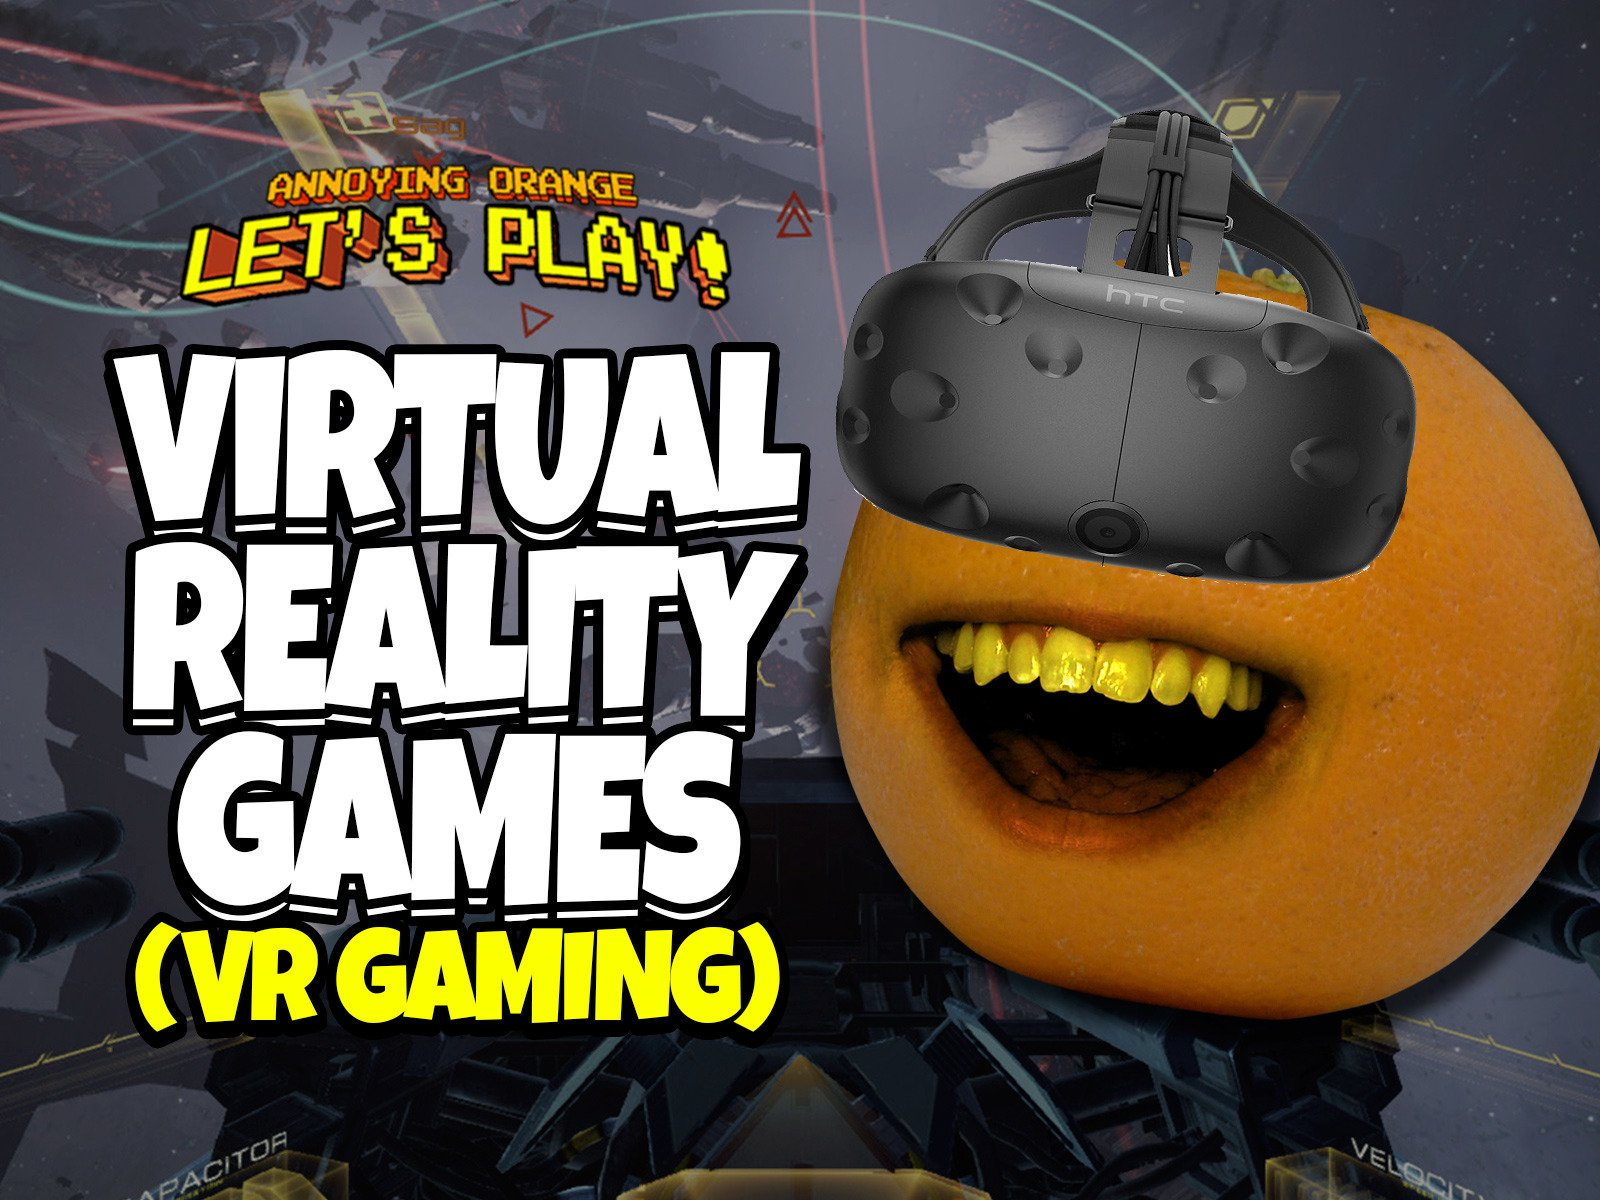 Clip: Annoying Orange Let's Play Virtual Reality Games (VR Gaming) - Season 1